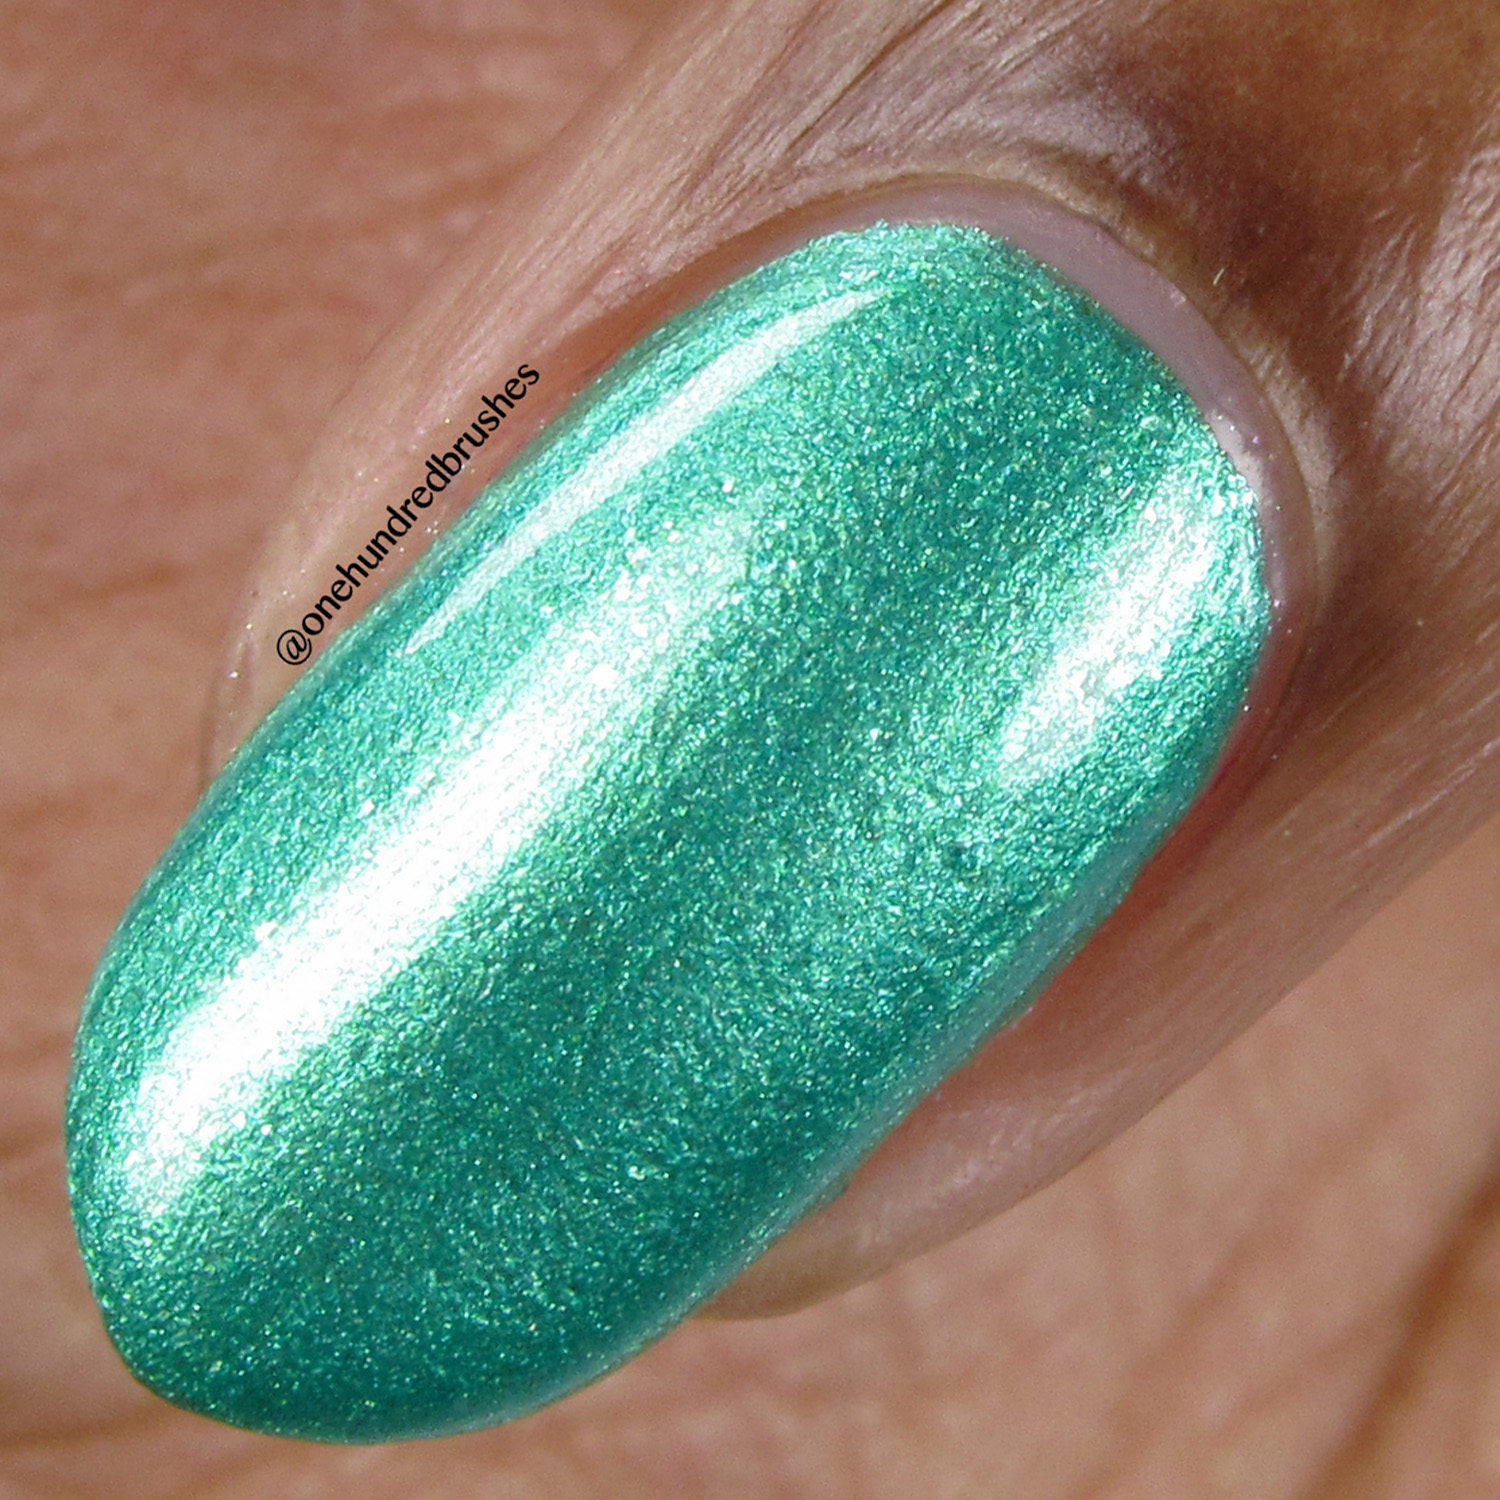 Venus Fly Trap - macro - Vapid Lacquer - April 2018 - Spring release - yellow - green - chartreuse - shimmer